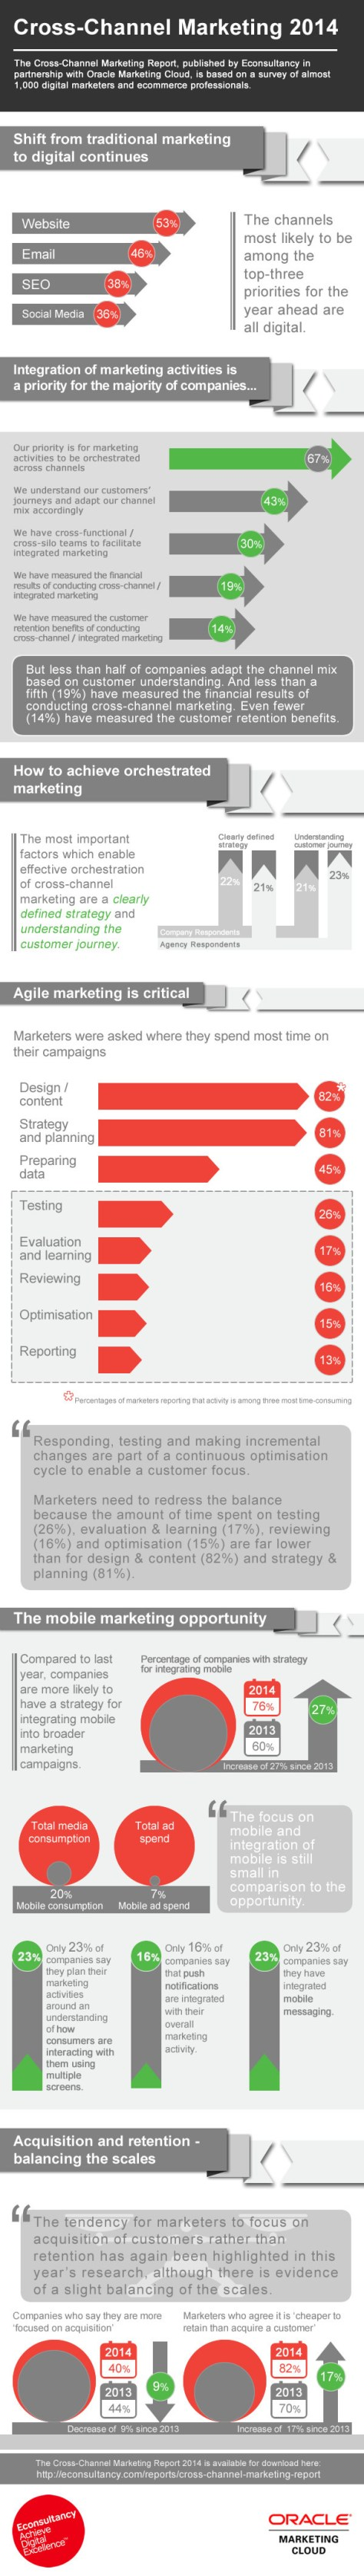 Econsultancy Cross-channel Marketing Report